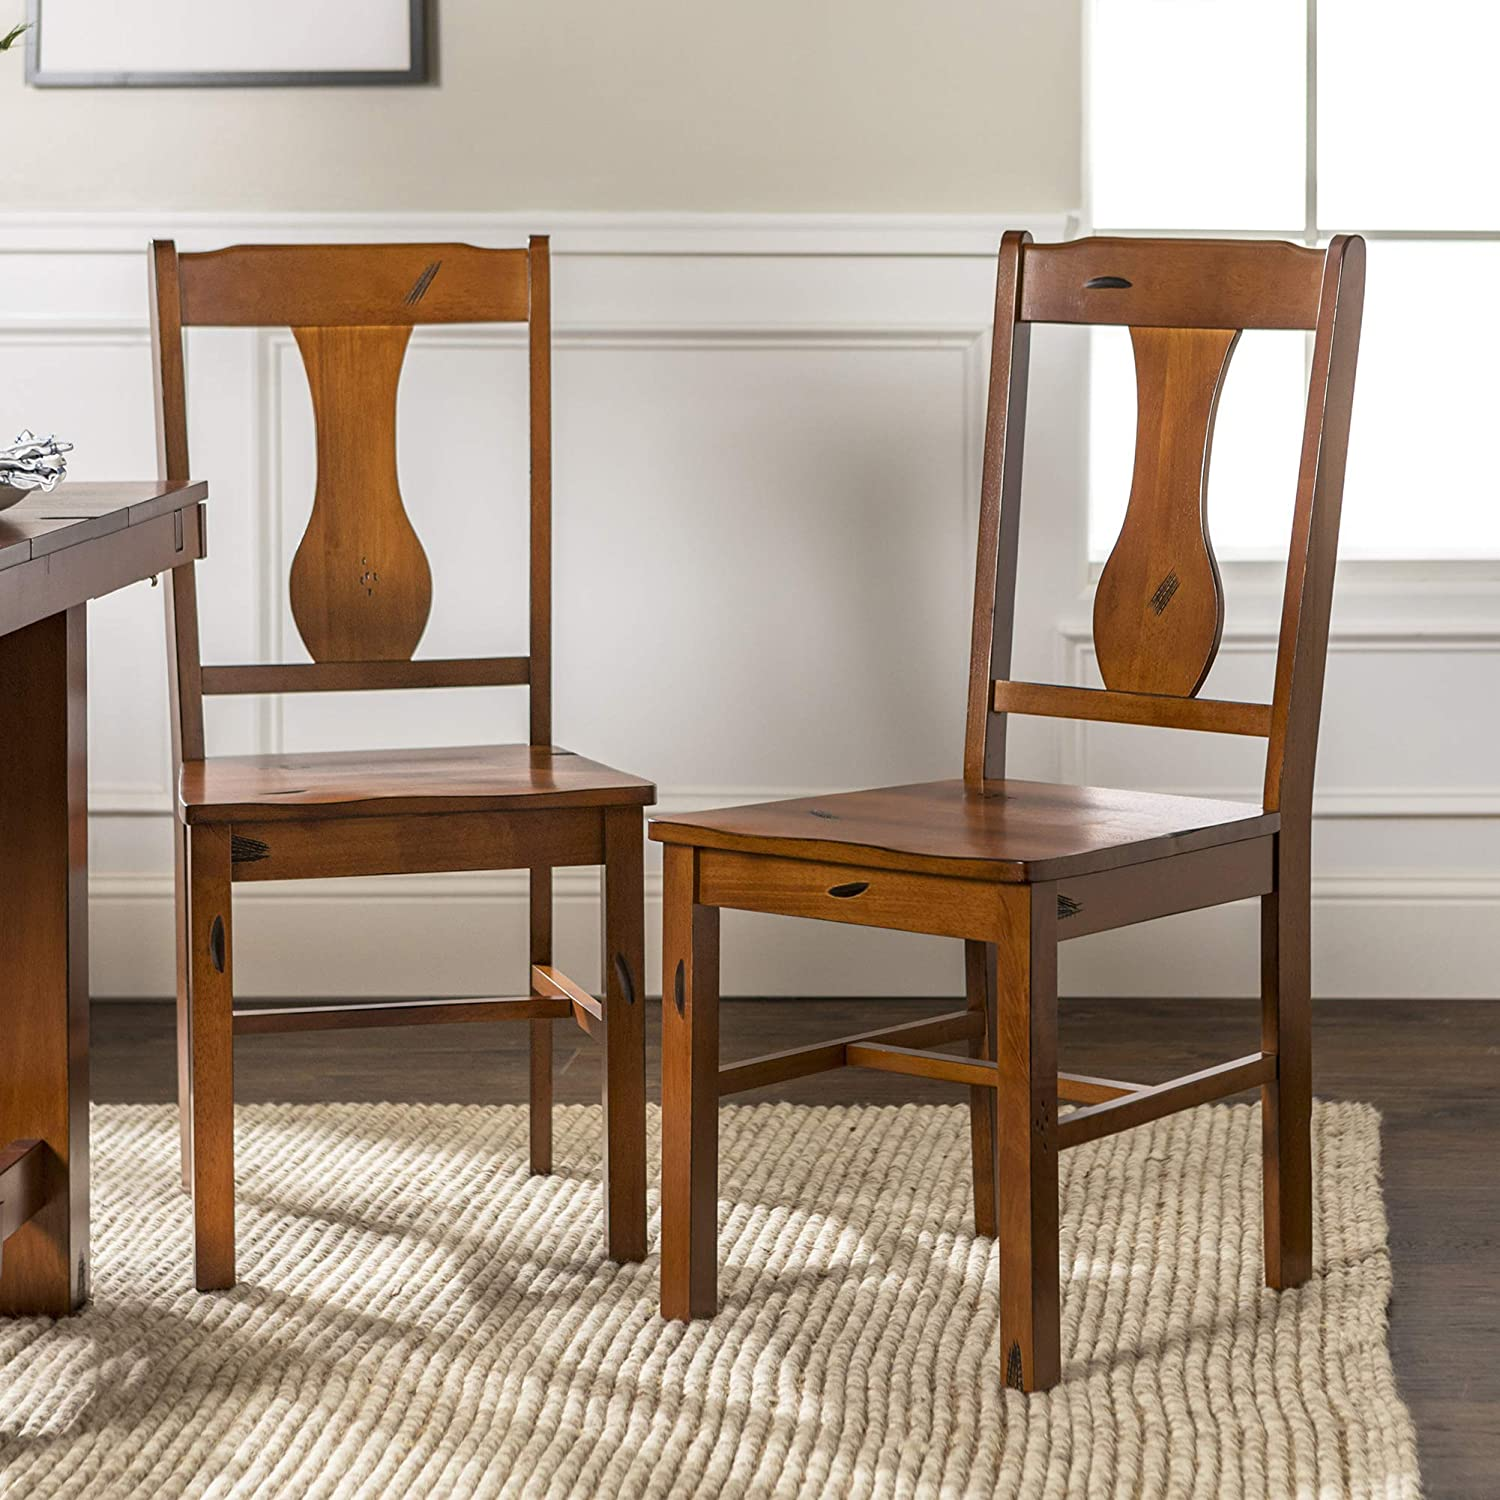 WE Furniture Rustic Farmhouse Wood Distressed Dining Room Chairs Kitchen, Dark Oak